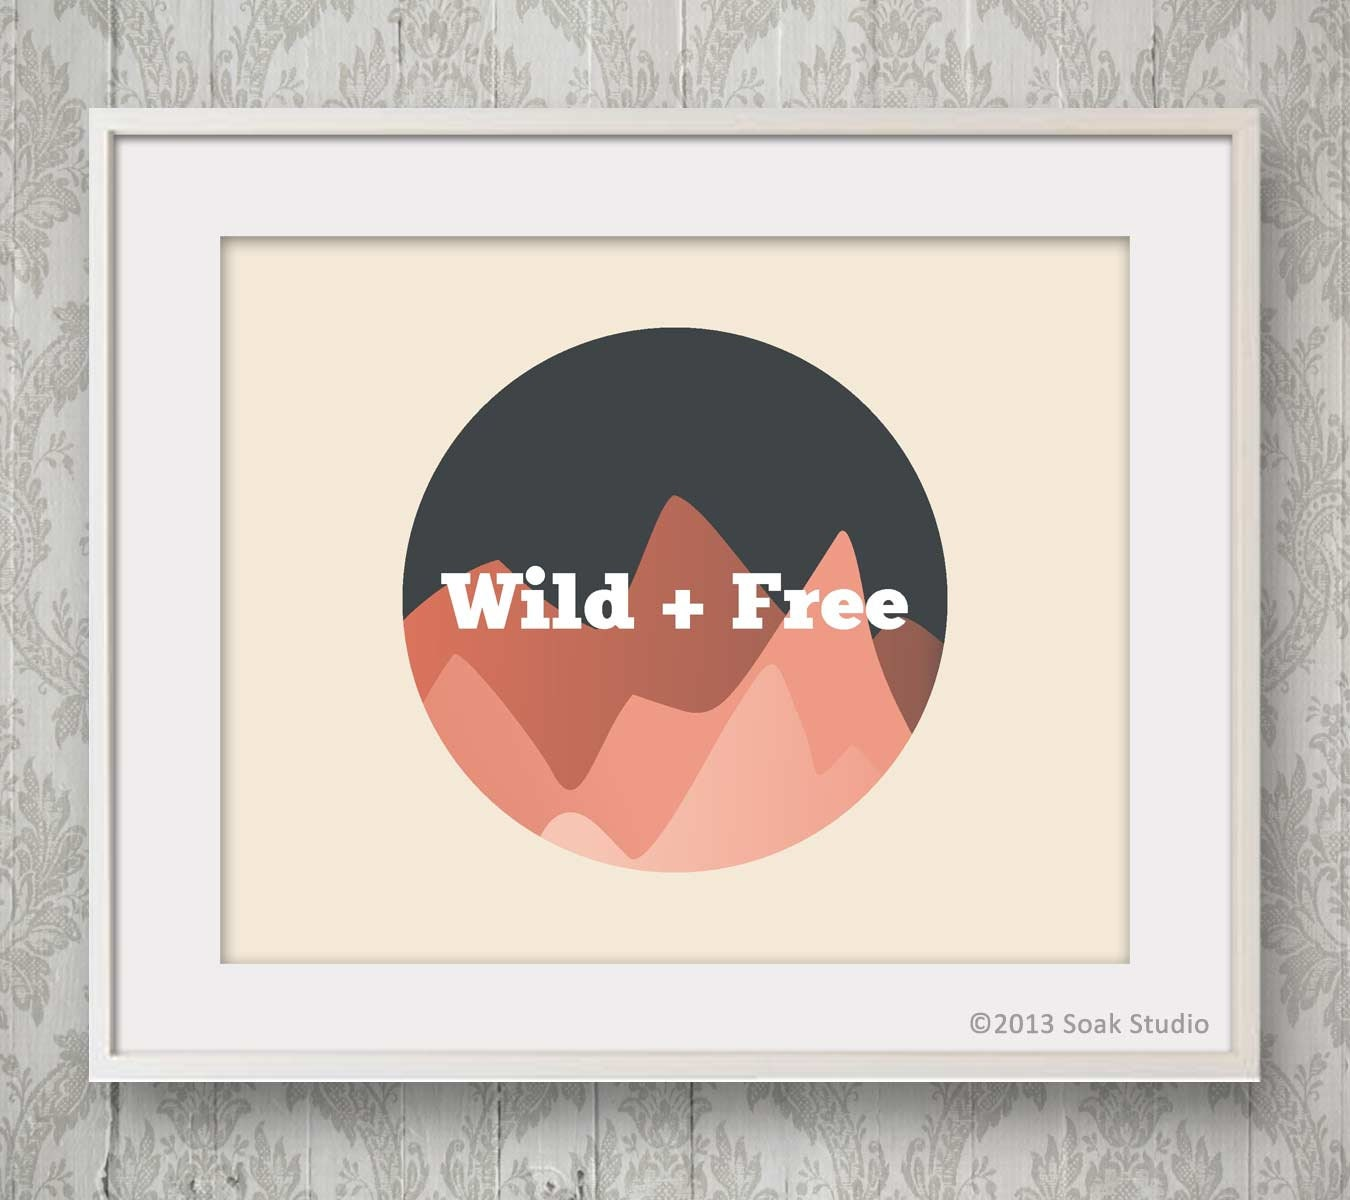 Wild and Free Mountain Print, Geometric Coral Ombre Mountain, Adventure Print, Childrens Illustration, Modern Nursery Art Print, Travel Gift - SoakStudio